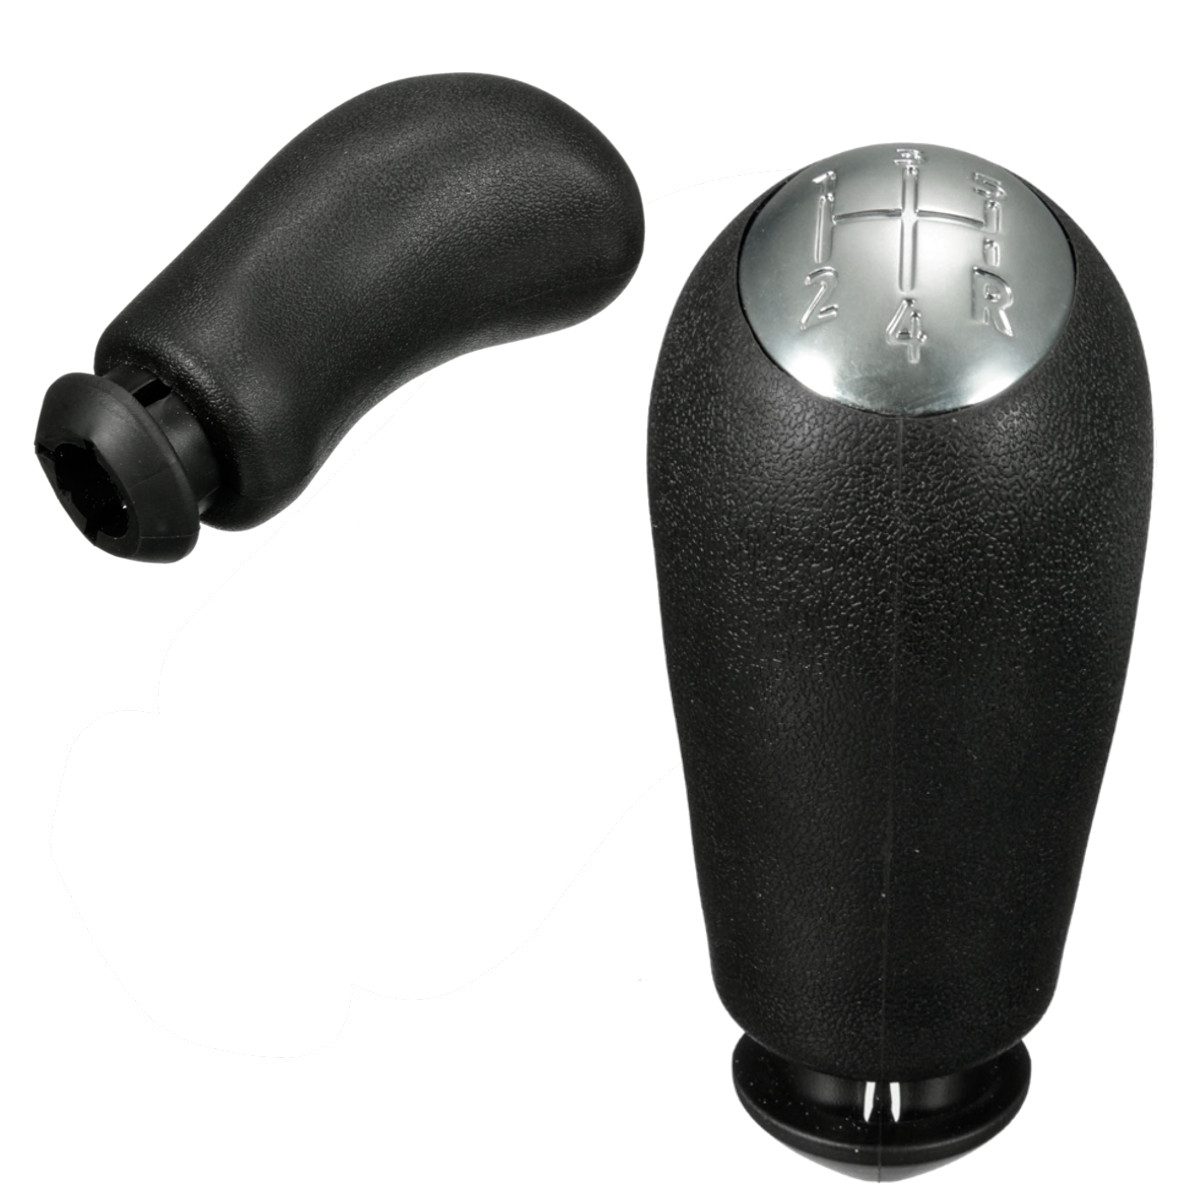 new black gear stick shift knob for renault clio mk3 3 iii. Black Bedroom Furniture Sets. Home Design Ideas